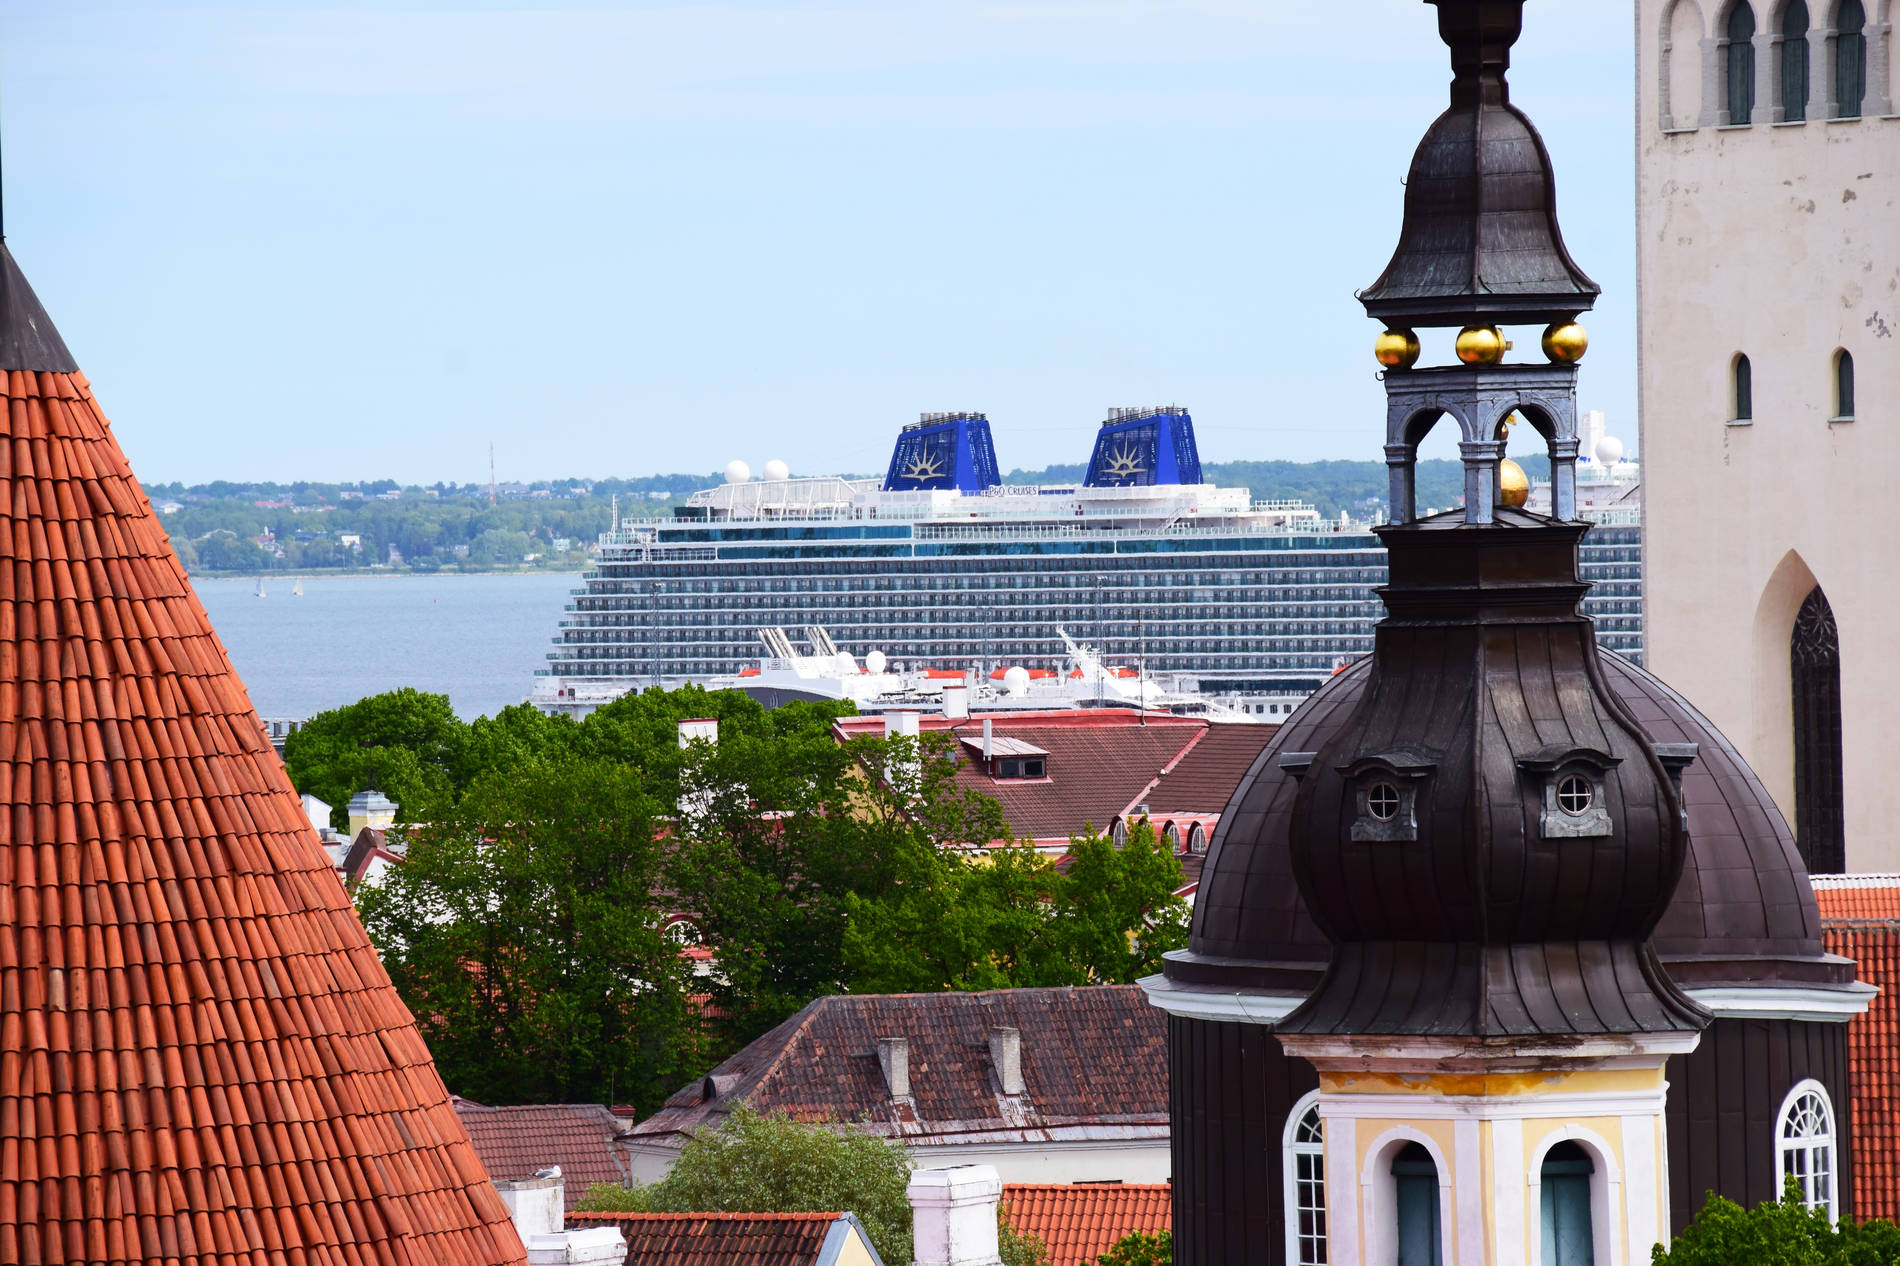 View of the Port of Tallinn